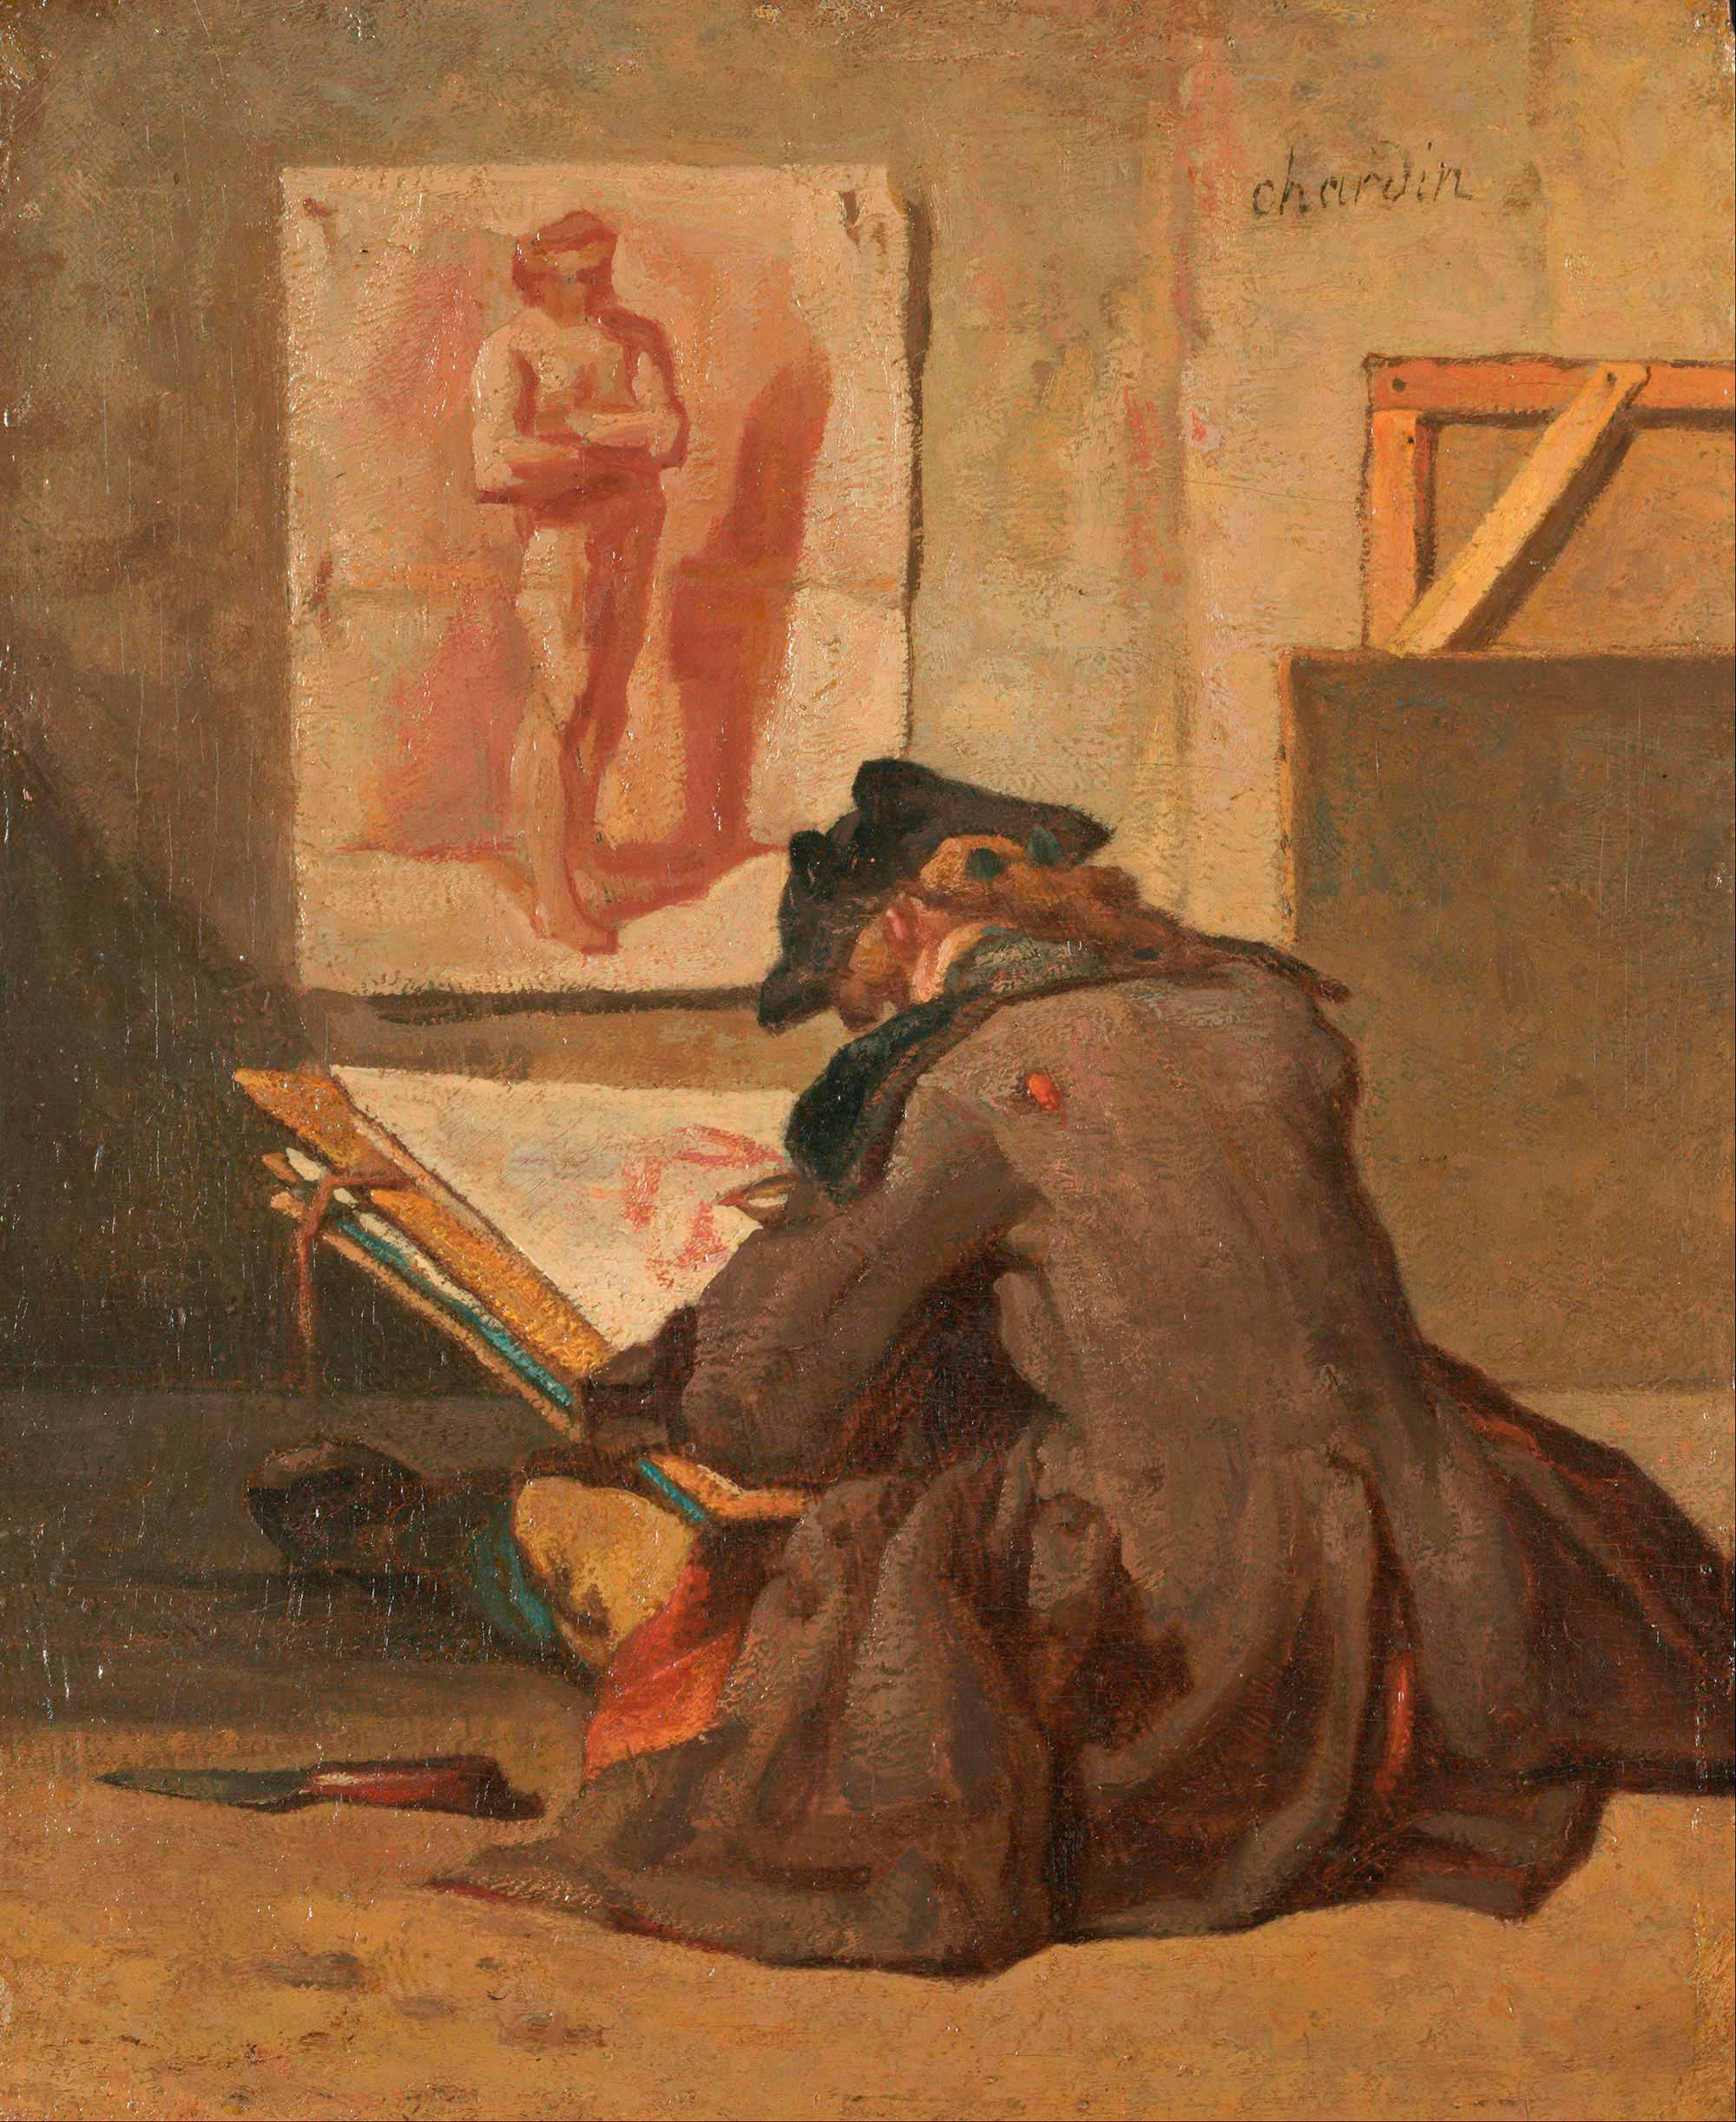 Jean Baptiste Siméon Chardin, The Young Draughtsman (1759)